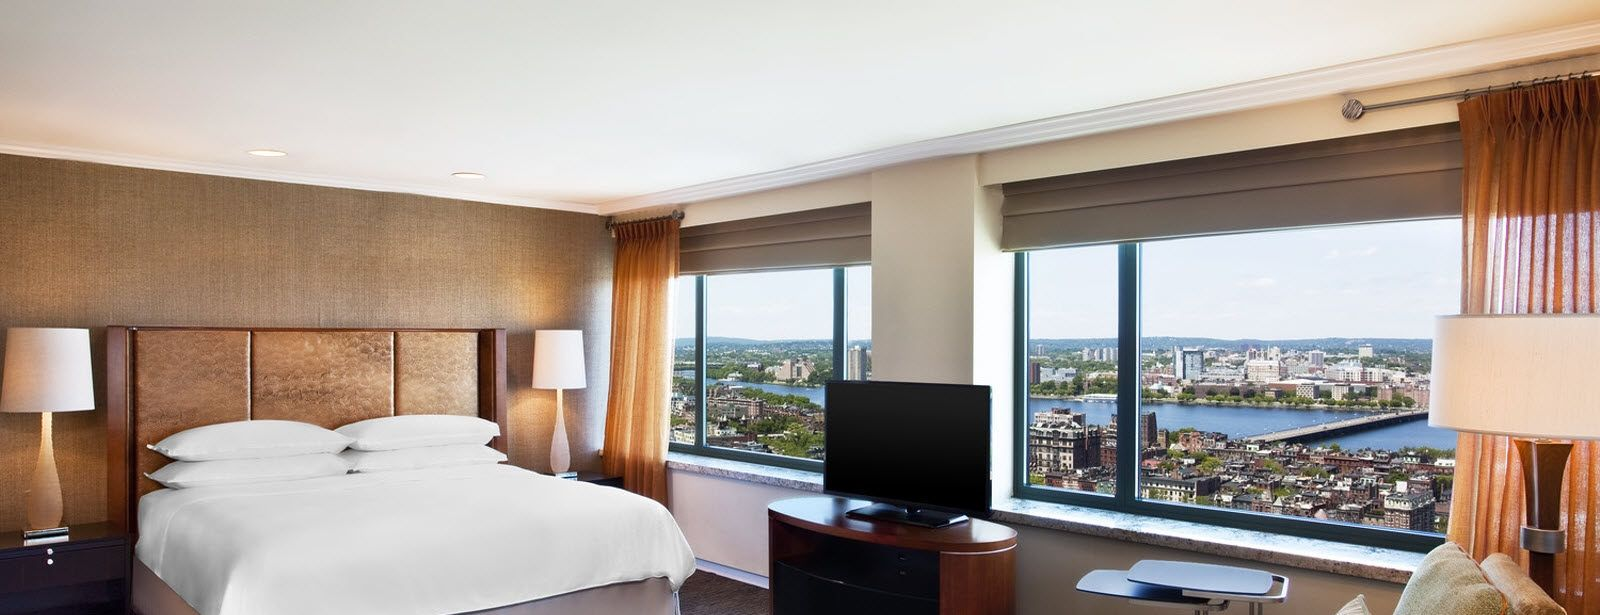 Sheraton Boston Hotel luxury suites view